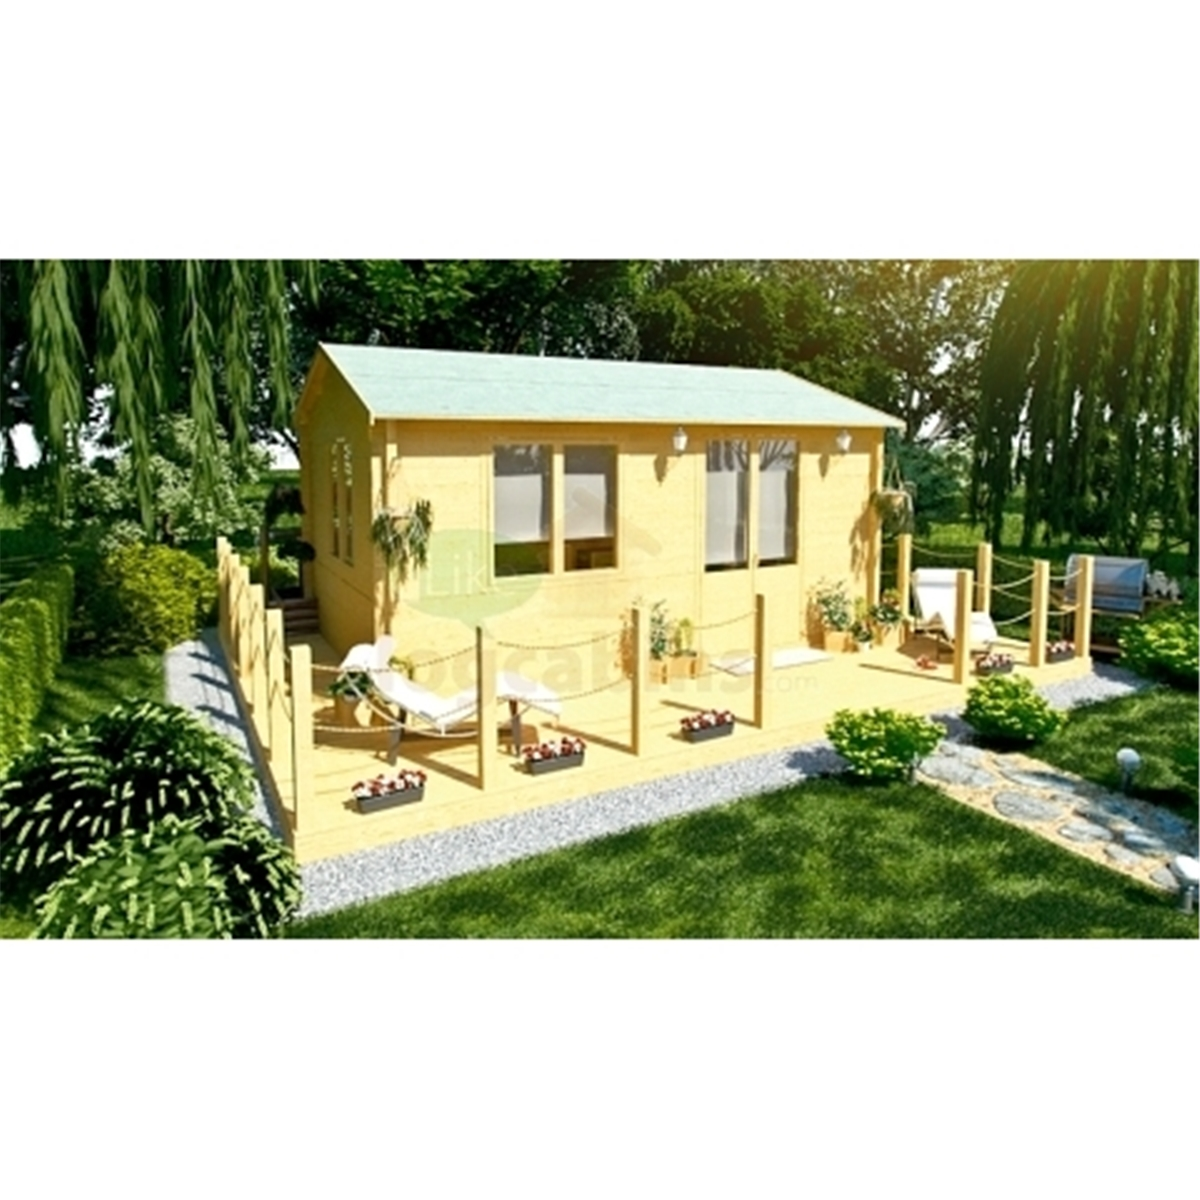 Superb img of Discovery Premier Cabins : 6m x 4m Deluxe Reverse Apex Log Cabin  with #604D18 color and 1200x1200 pixels